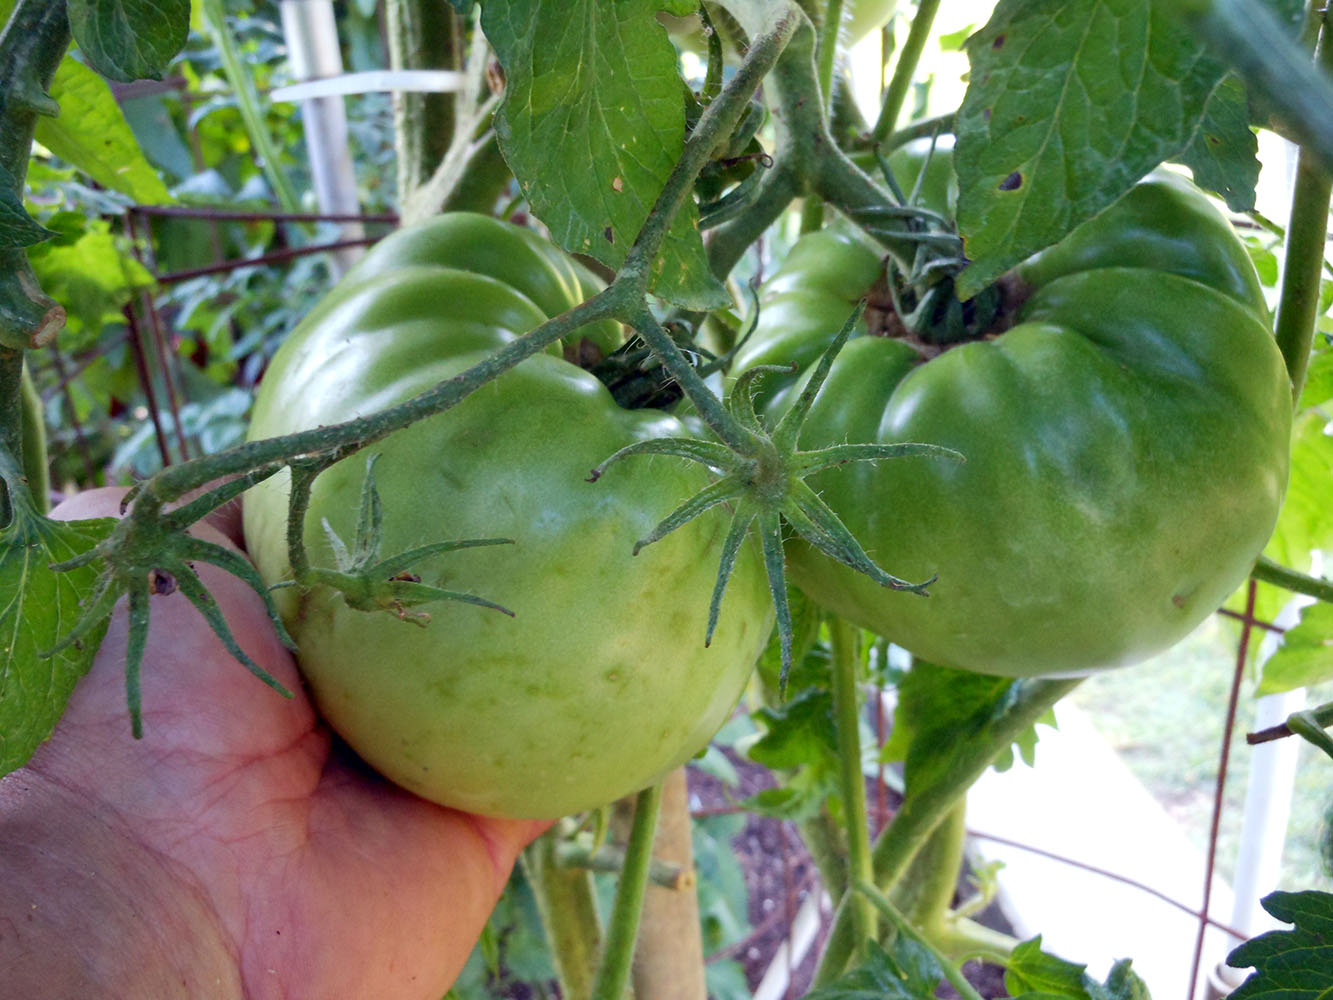 06-25-2015 Garden 02 Better Boy Tomatoes 09